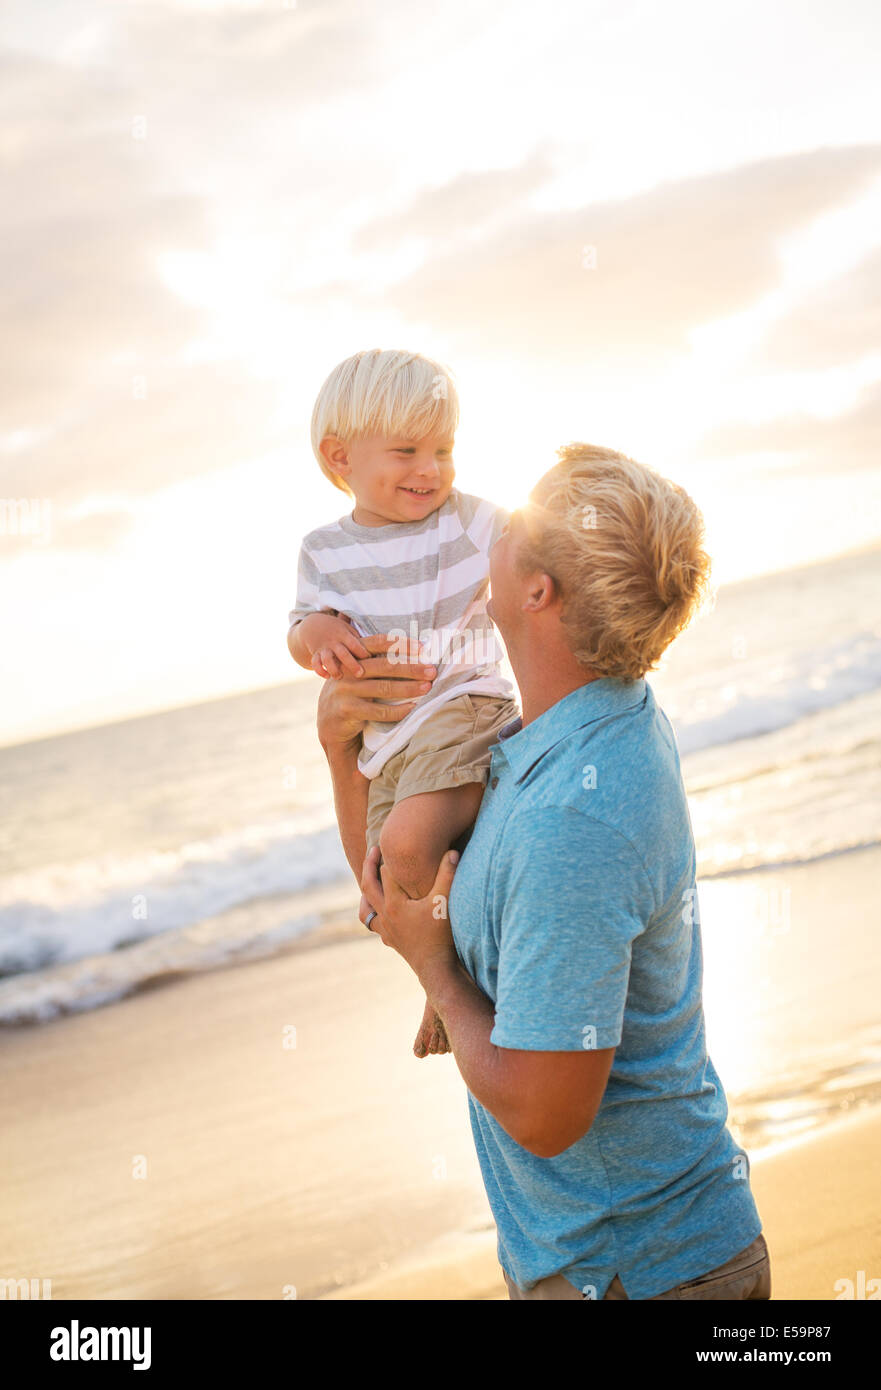 Happy loving father and son on the beach at sunset Stock Photo